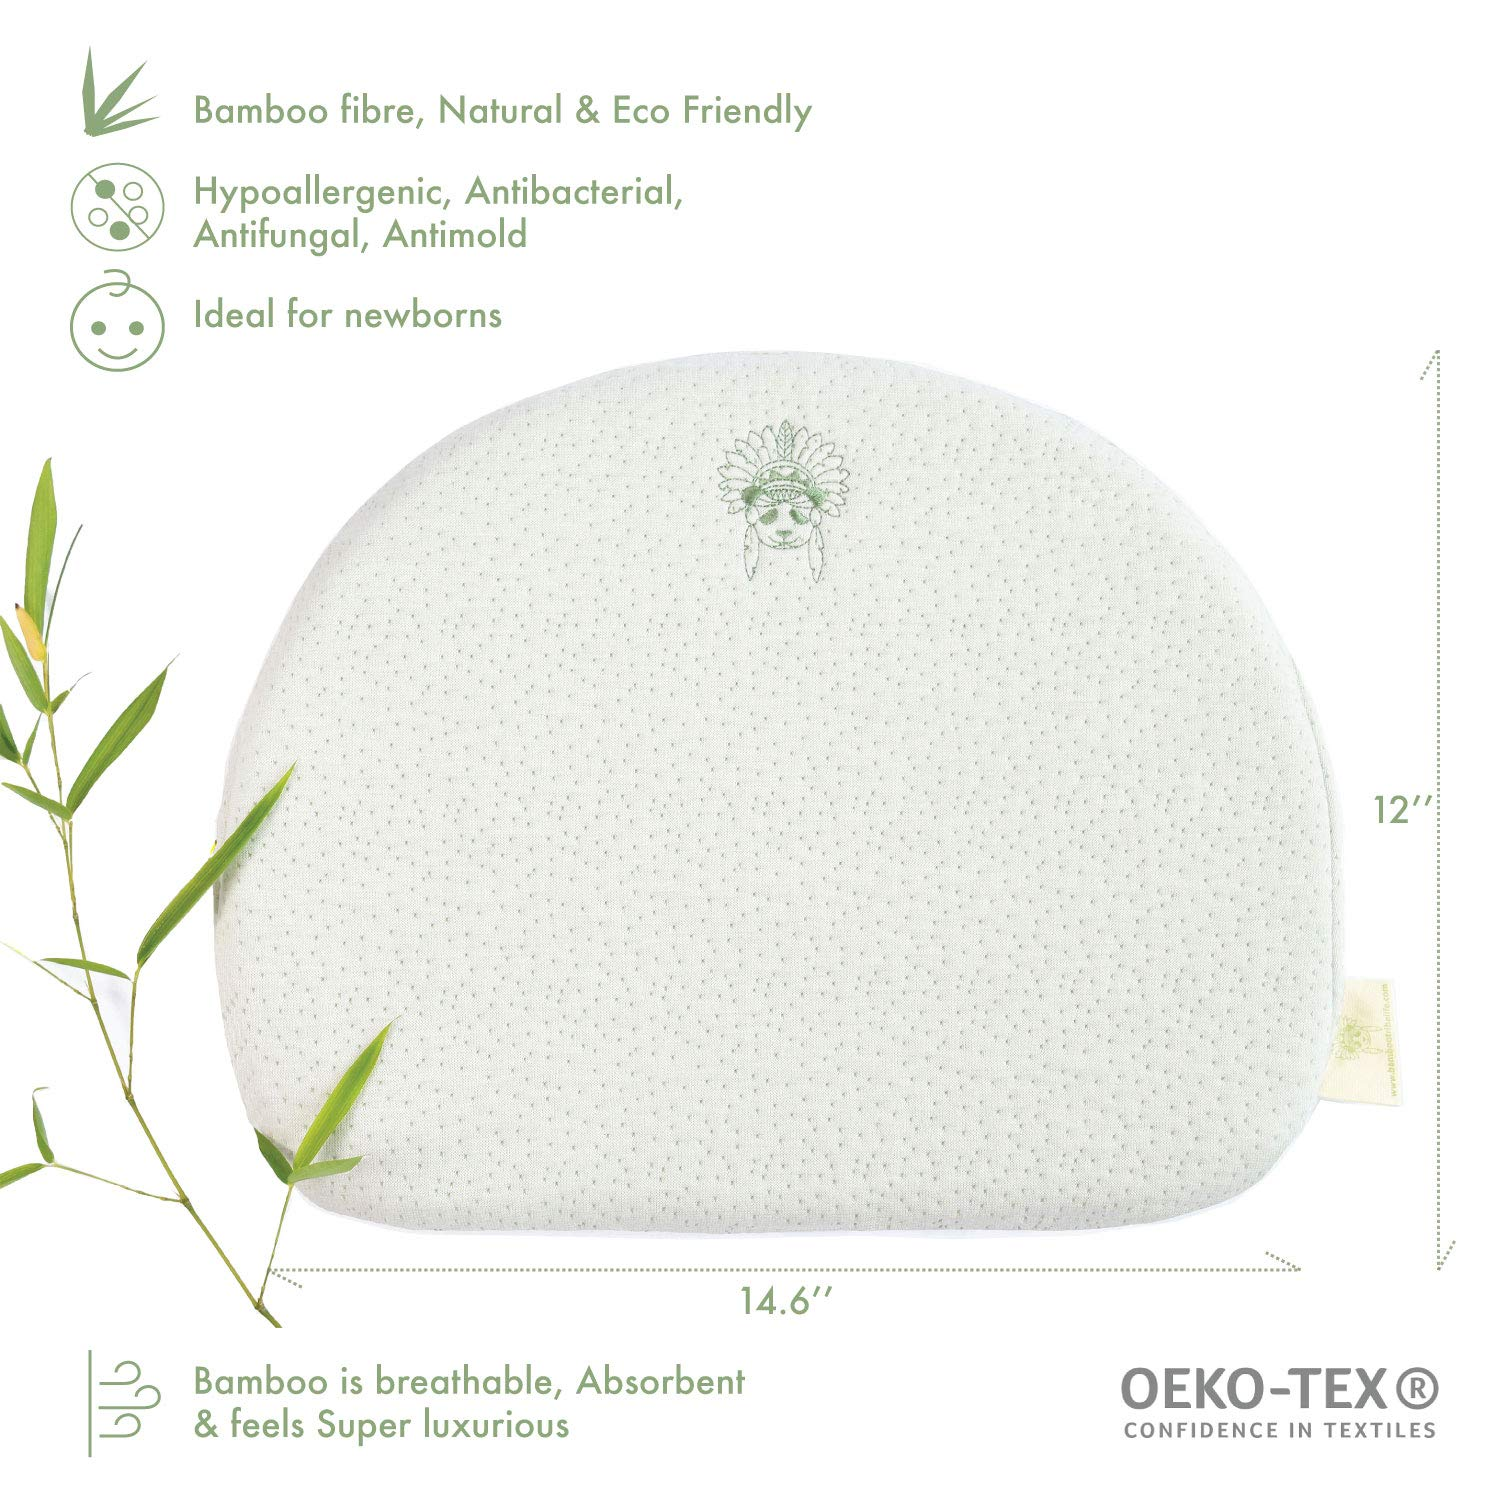 Memory Foam Bamboo Baby Universal Bassinet Wedge Handcrafted Waterproof Layer Acid Reflux Thermoregulating Eco Friendly Bamboo Bonus Bamboo Pillowcase Relief from Colic Nasal Congestion